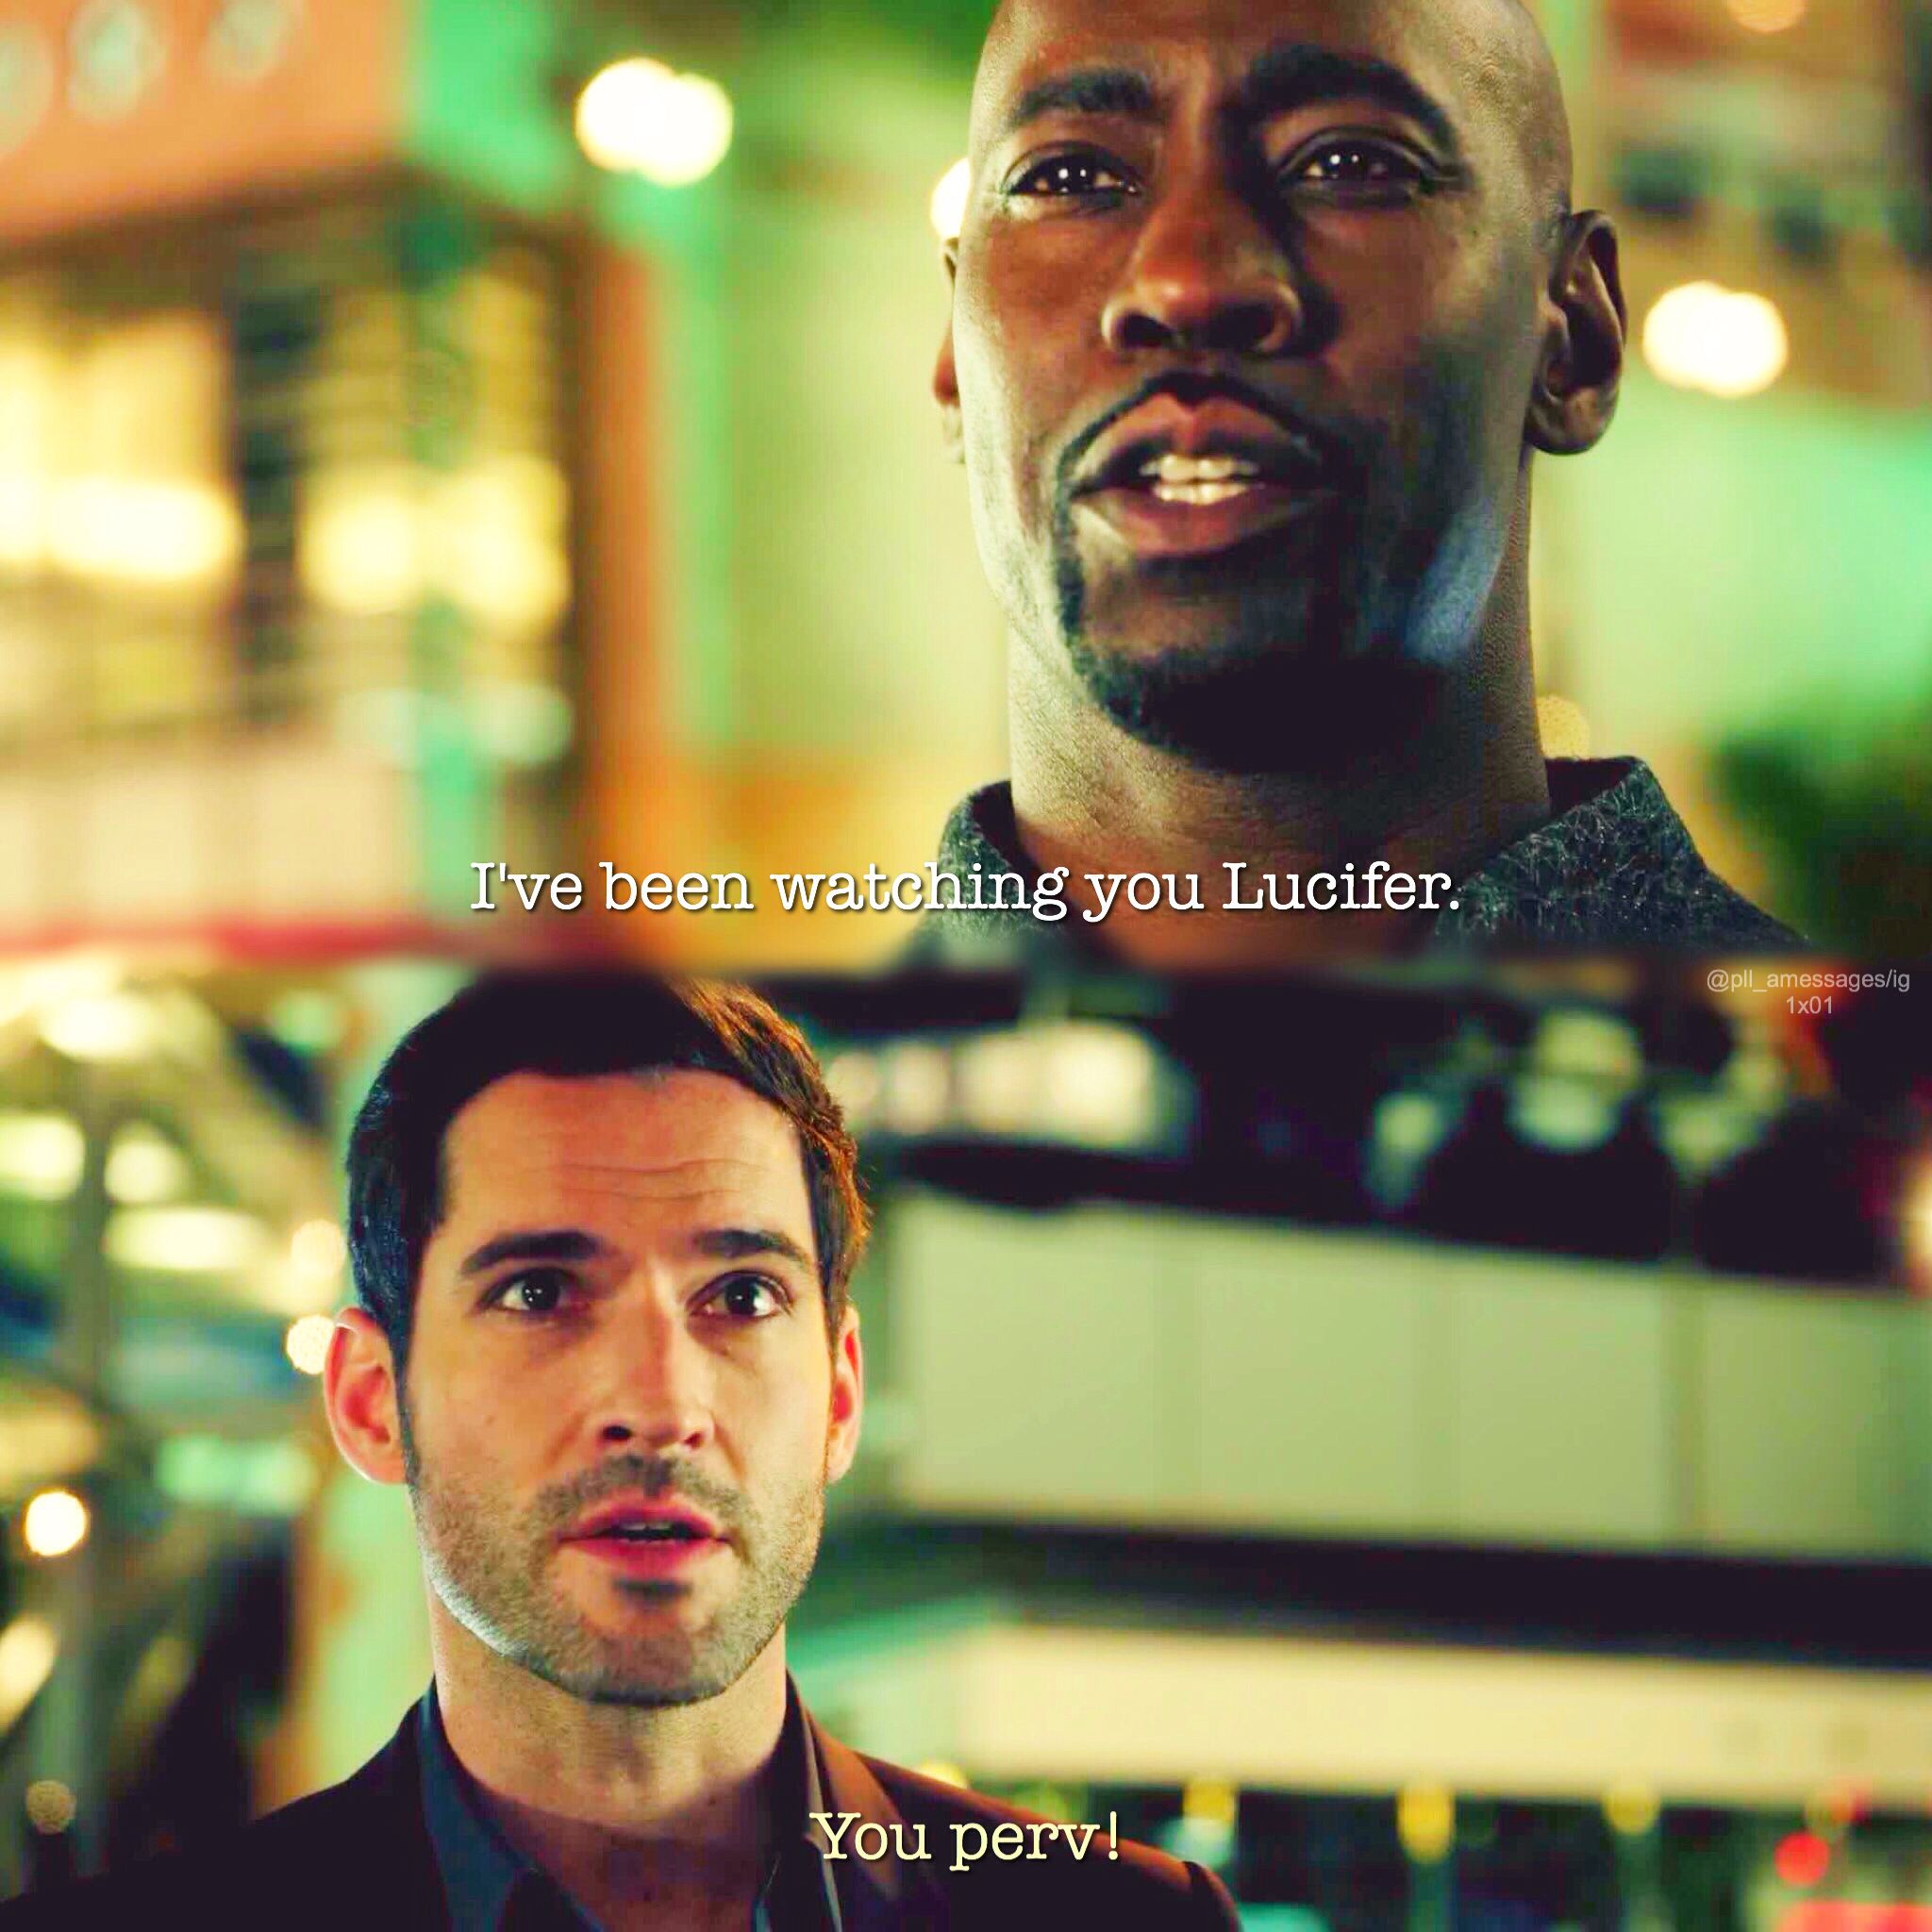 Lucifer Morningstar In Lucifer 2 2016: Tom Ellis Lucifer